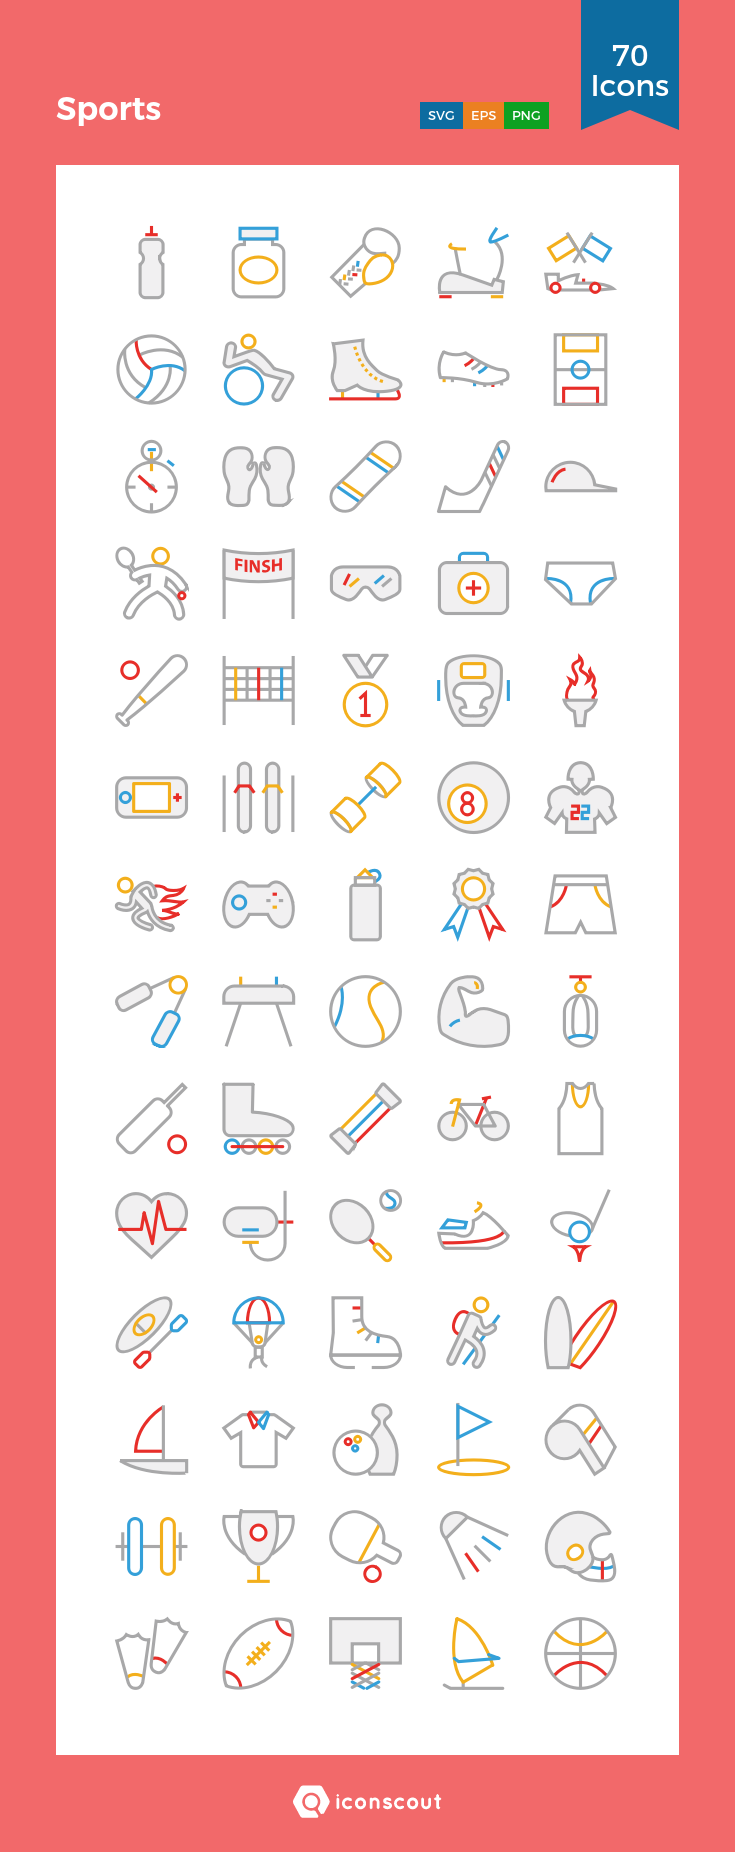 Download Sports Icon Pack Available In Svg Png Eps Ai Icon Fonts Icon Pack Sport Icon Icon